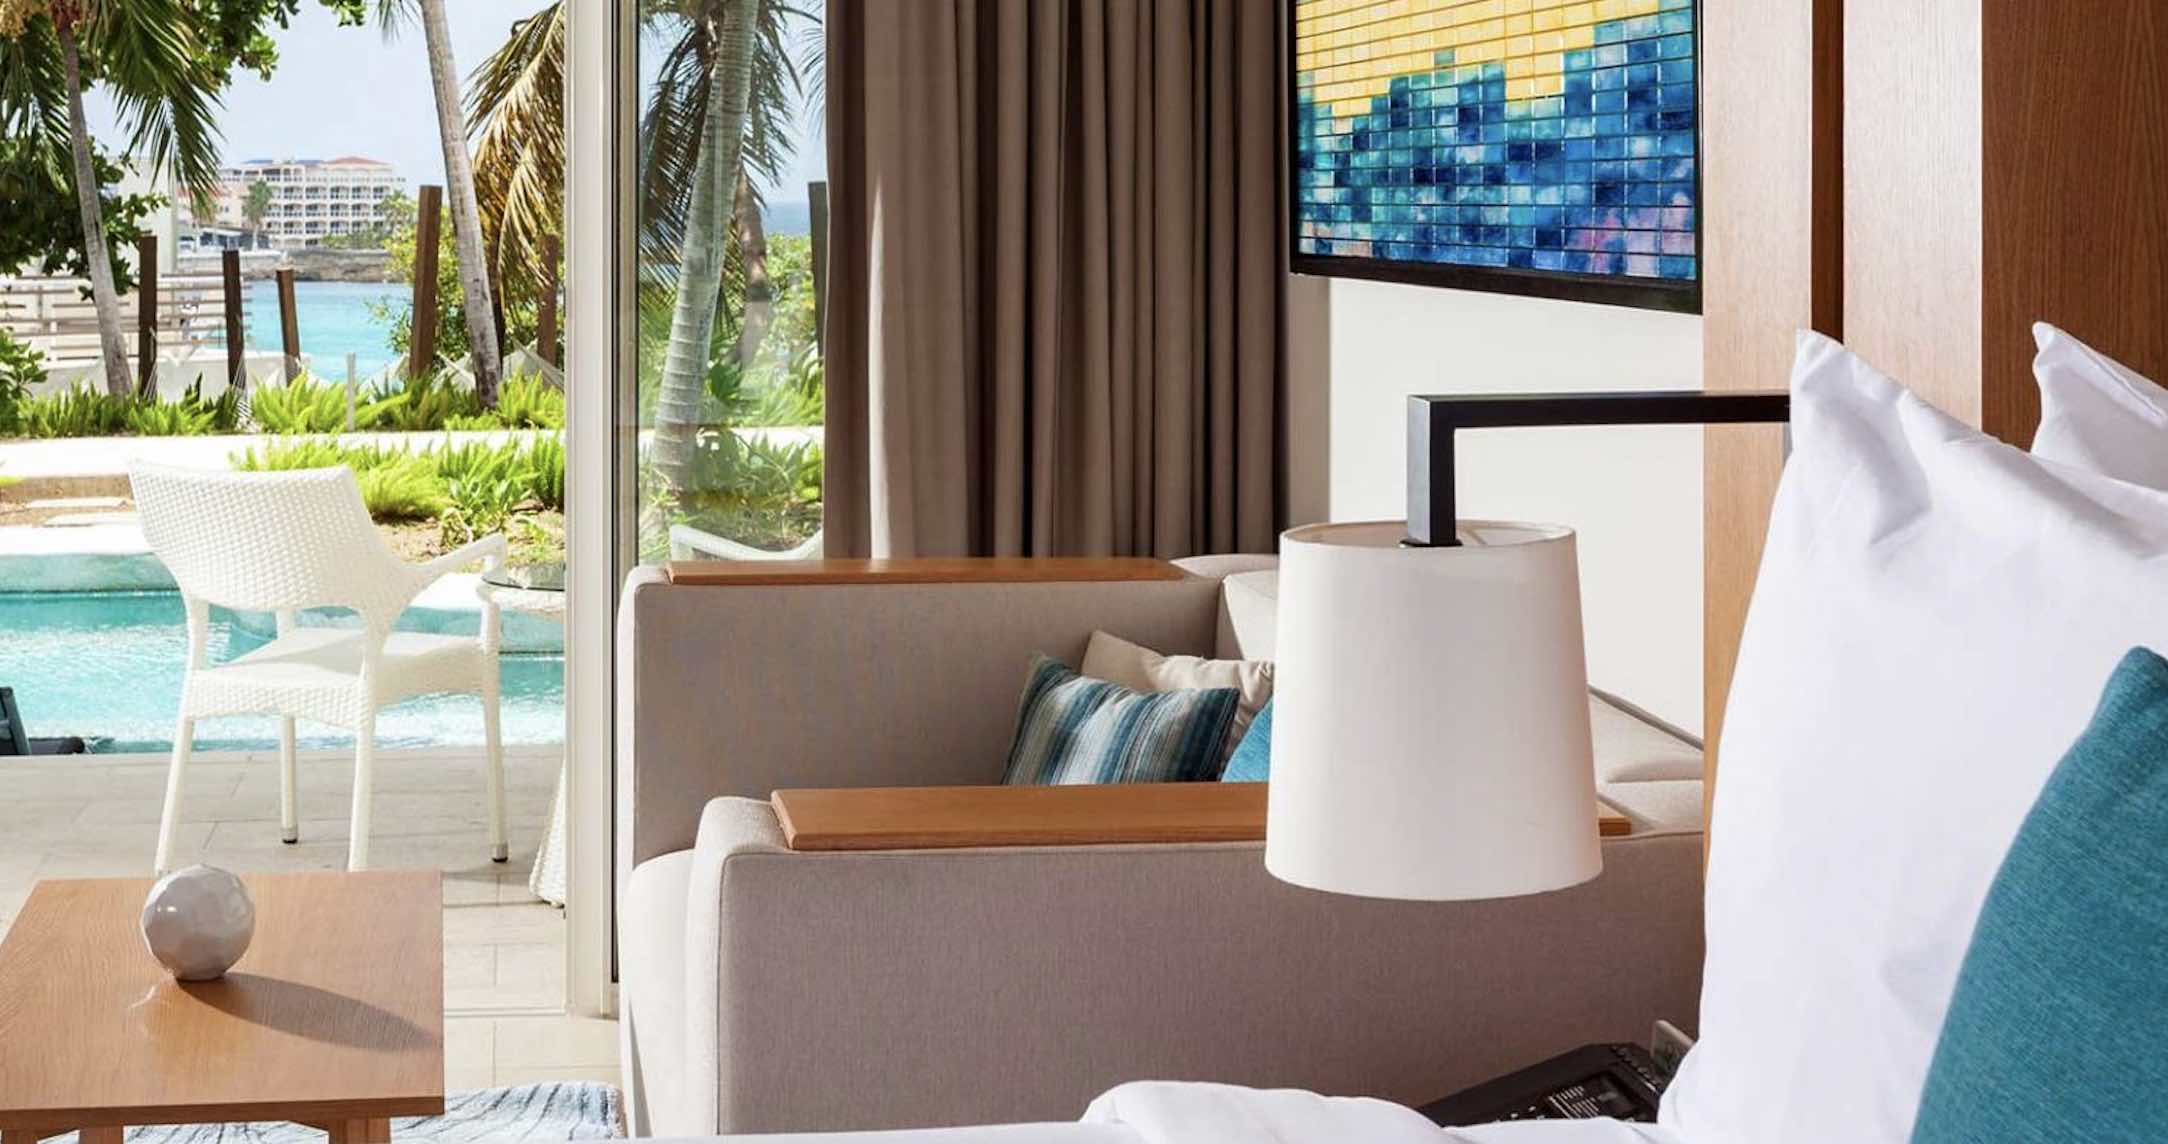 Luxury resorts in St Martin include Sonesta Ocean Point Resort room and view